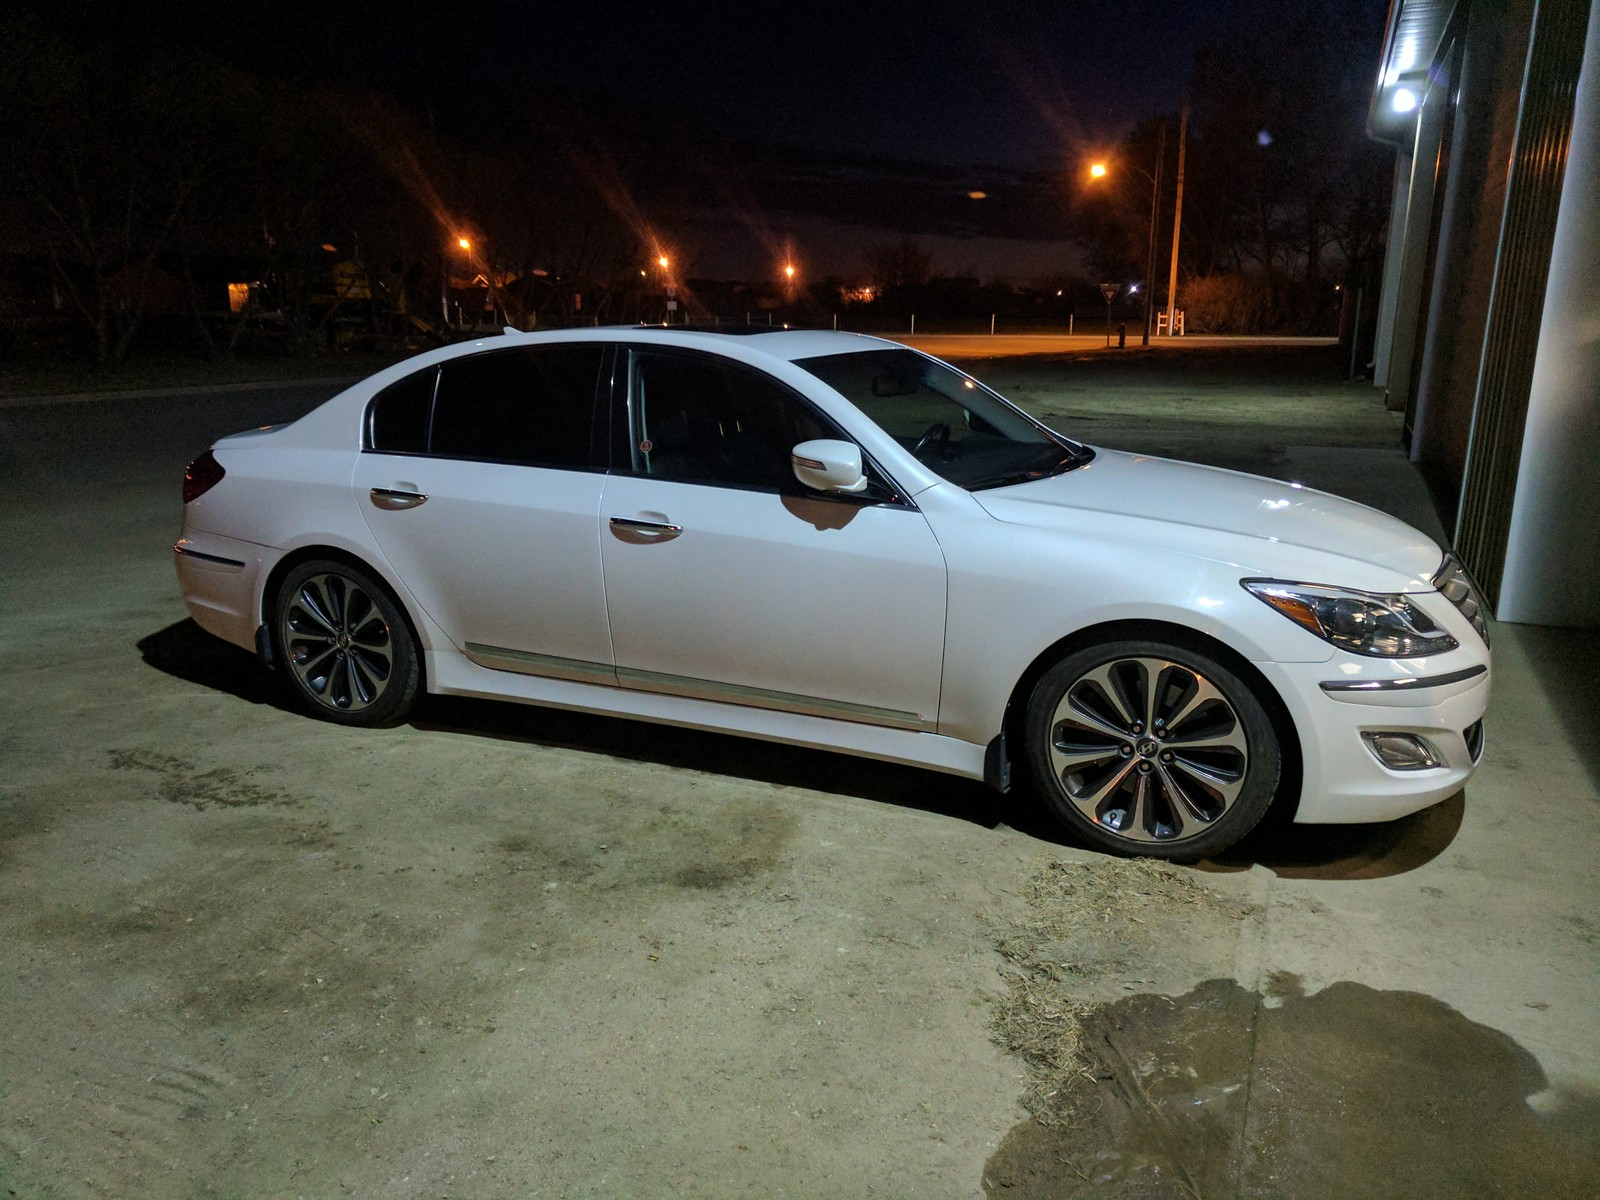 2012 Hyundai Genesis Sedan 5 0l Rspec 1 4 Mile Drag Racing